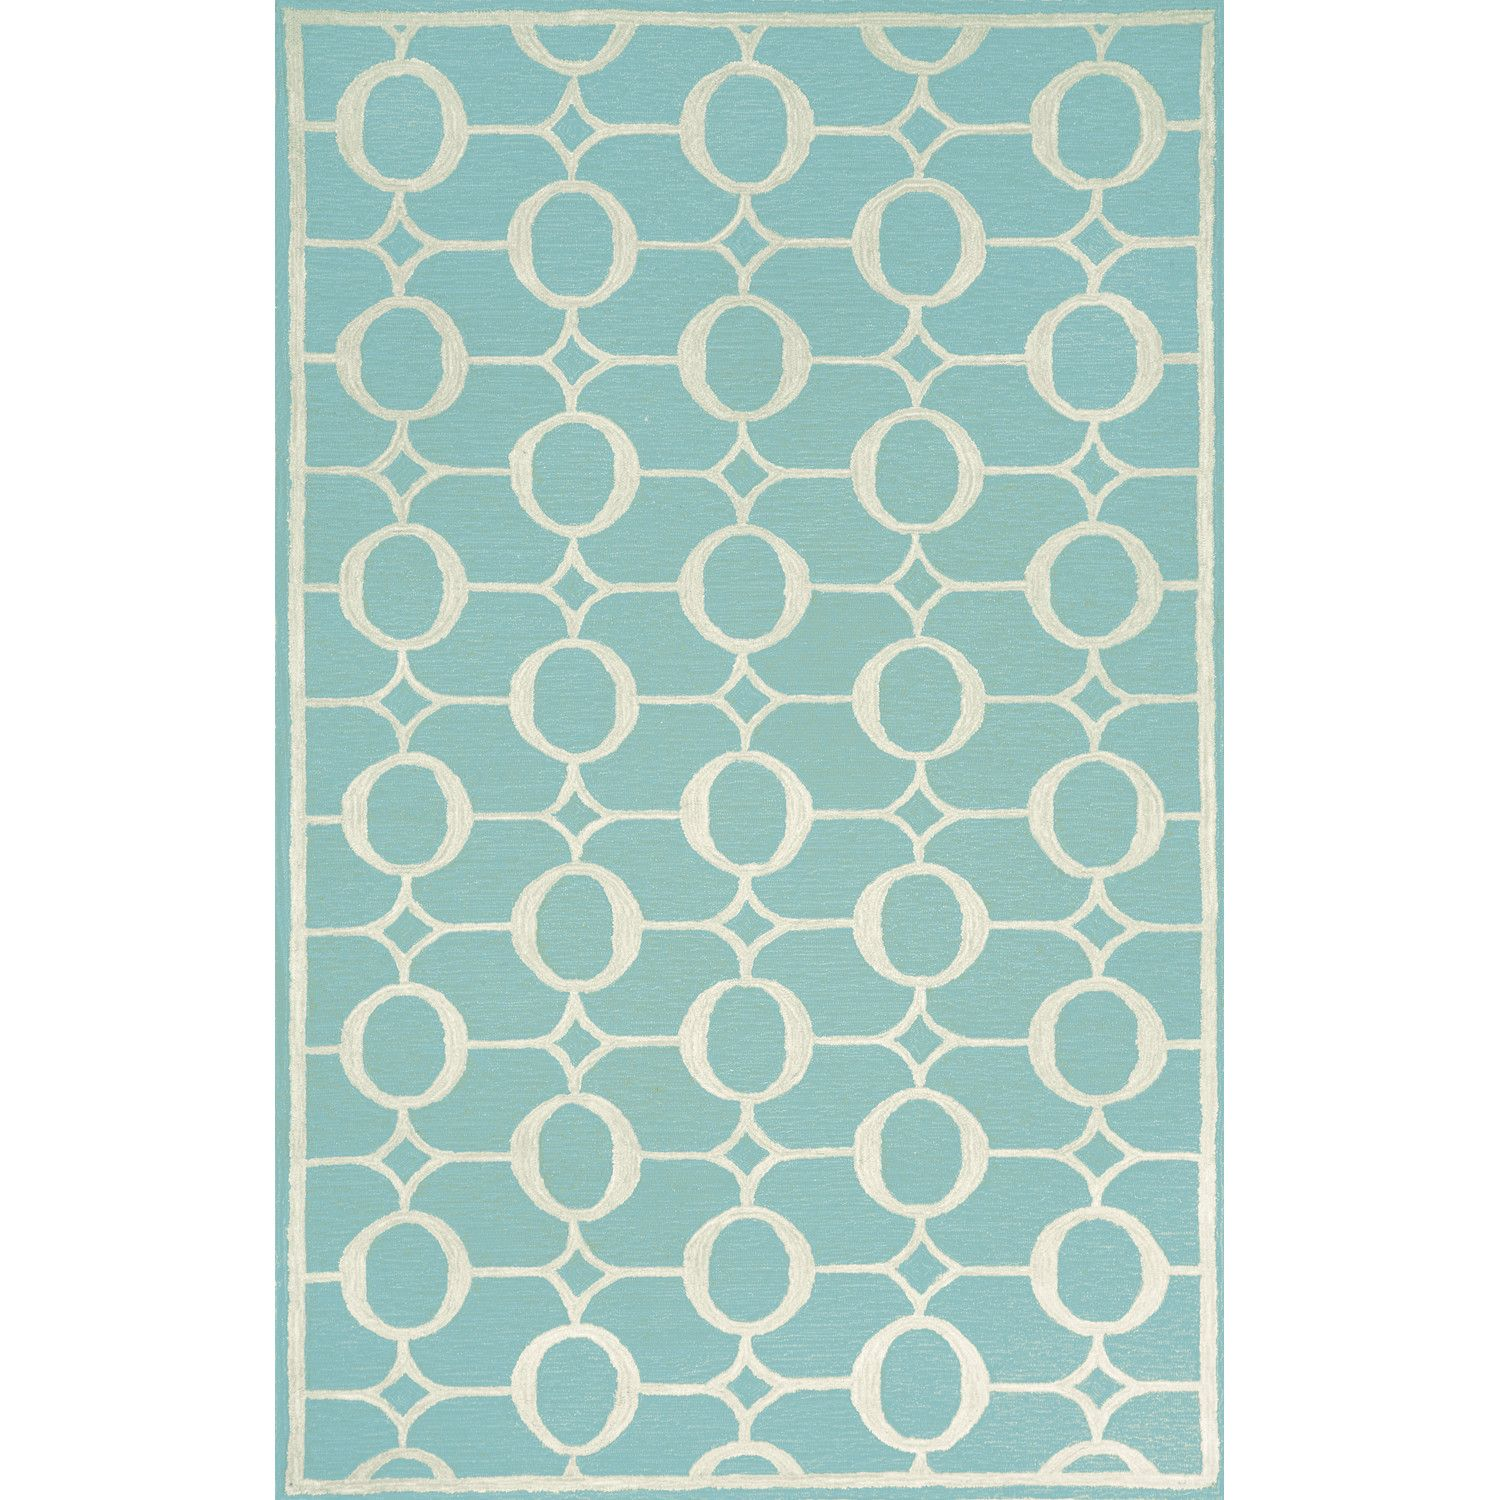 birch lane kids follow these steps rug  outdoor area rugs rugs  - liora manne spello arabesque aqua outdoor area rug